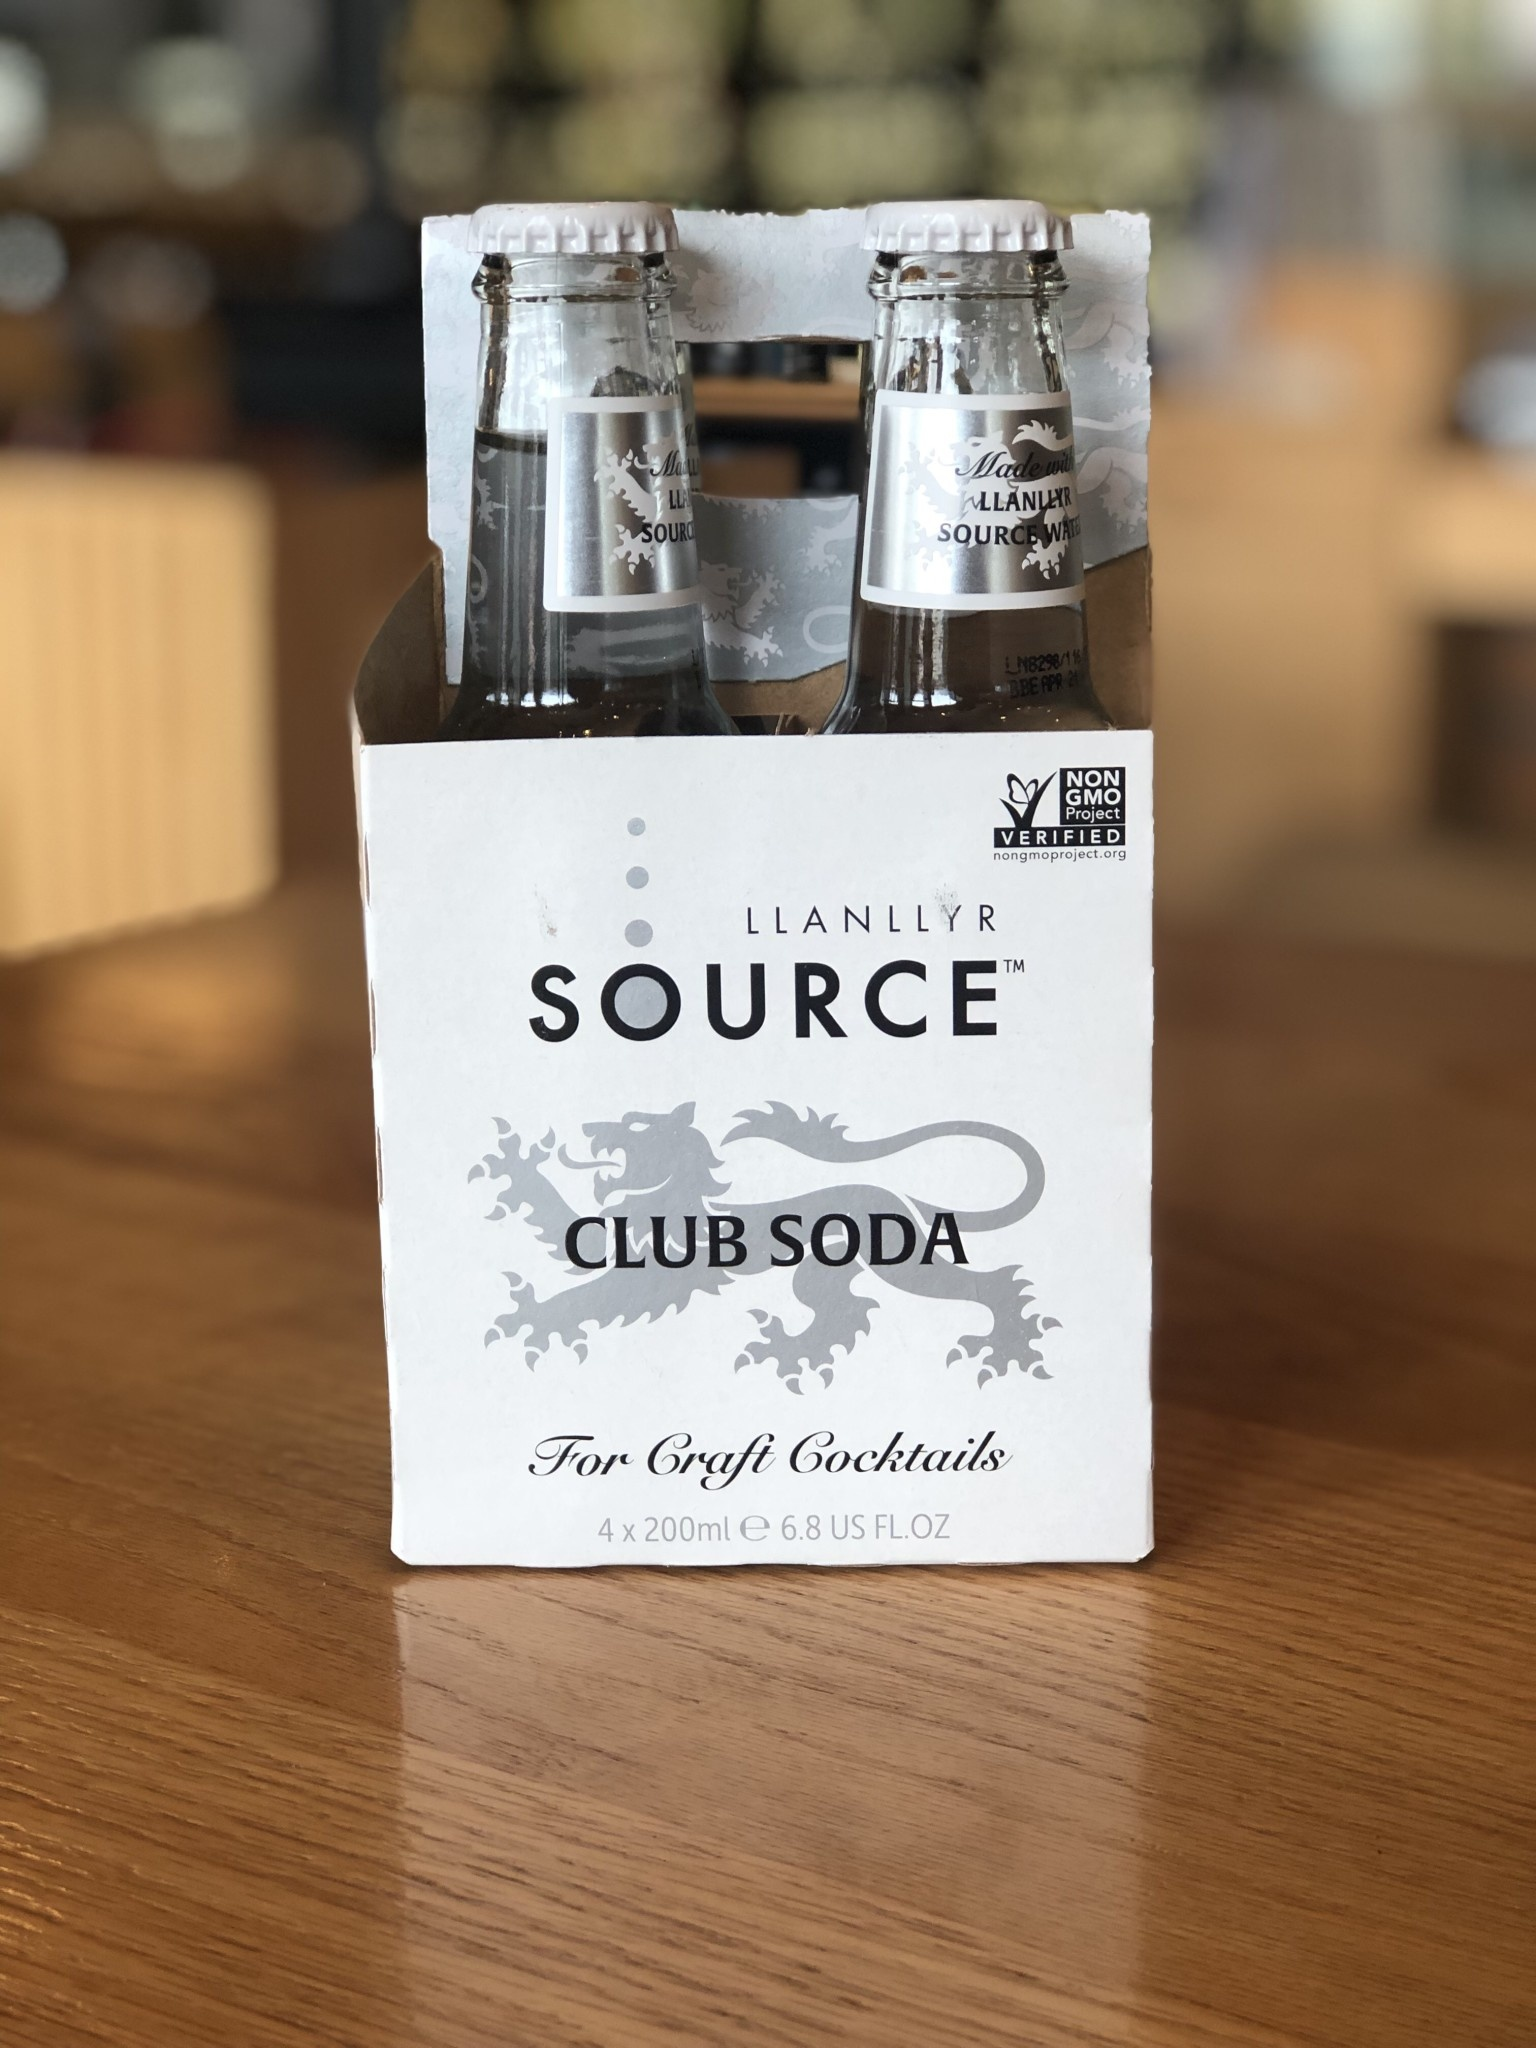 Llanllyr Llanllyr Source Club Soda Pack 200mL